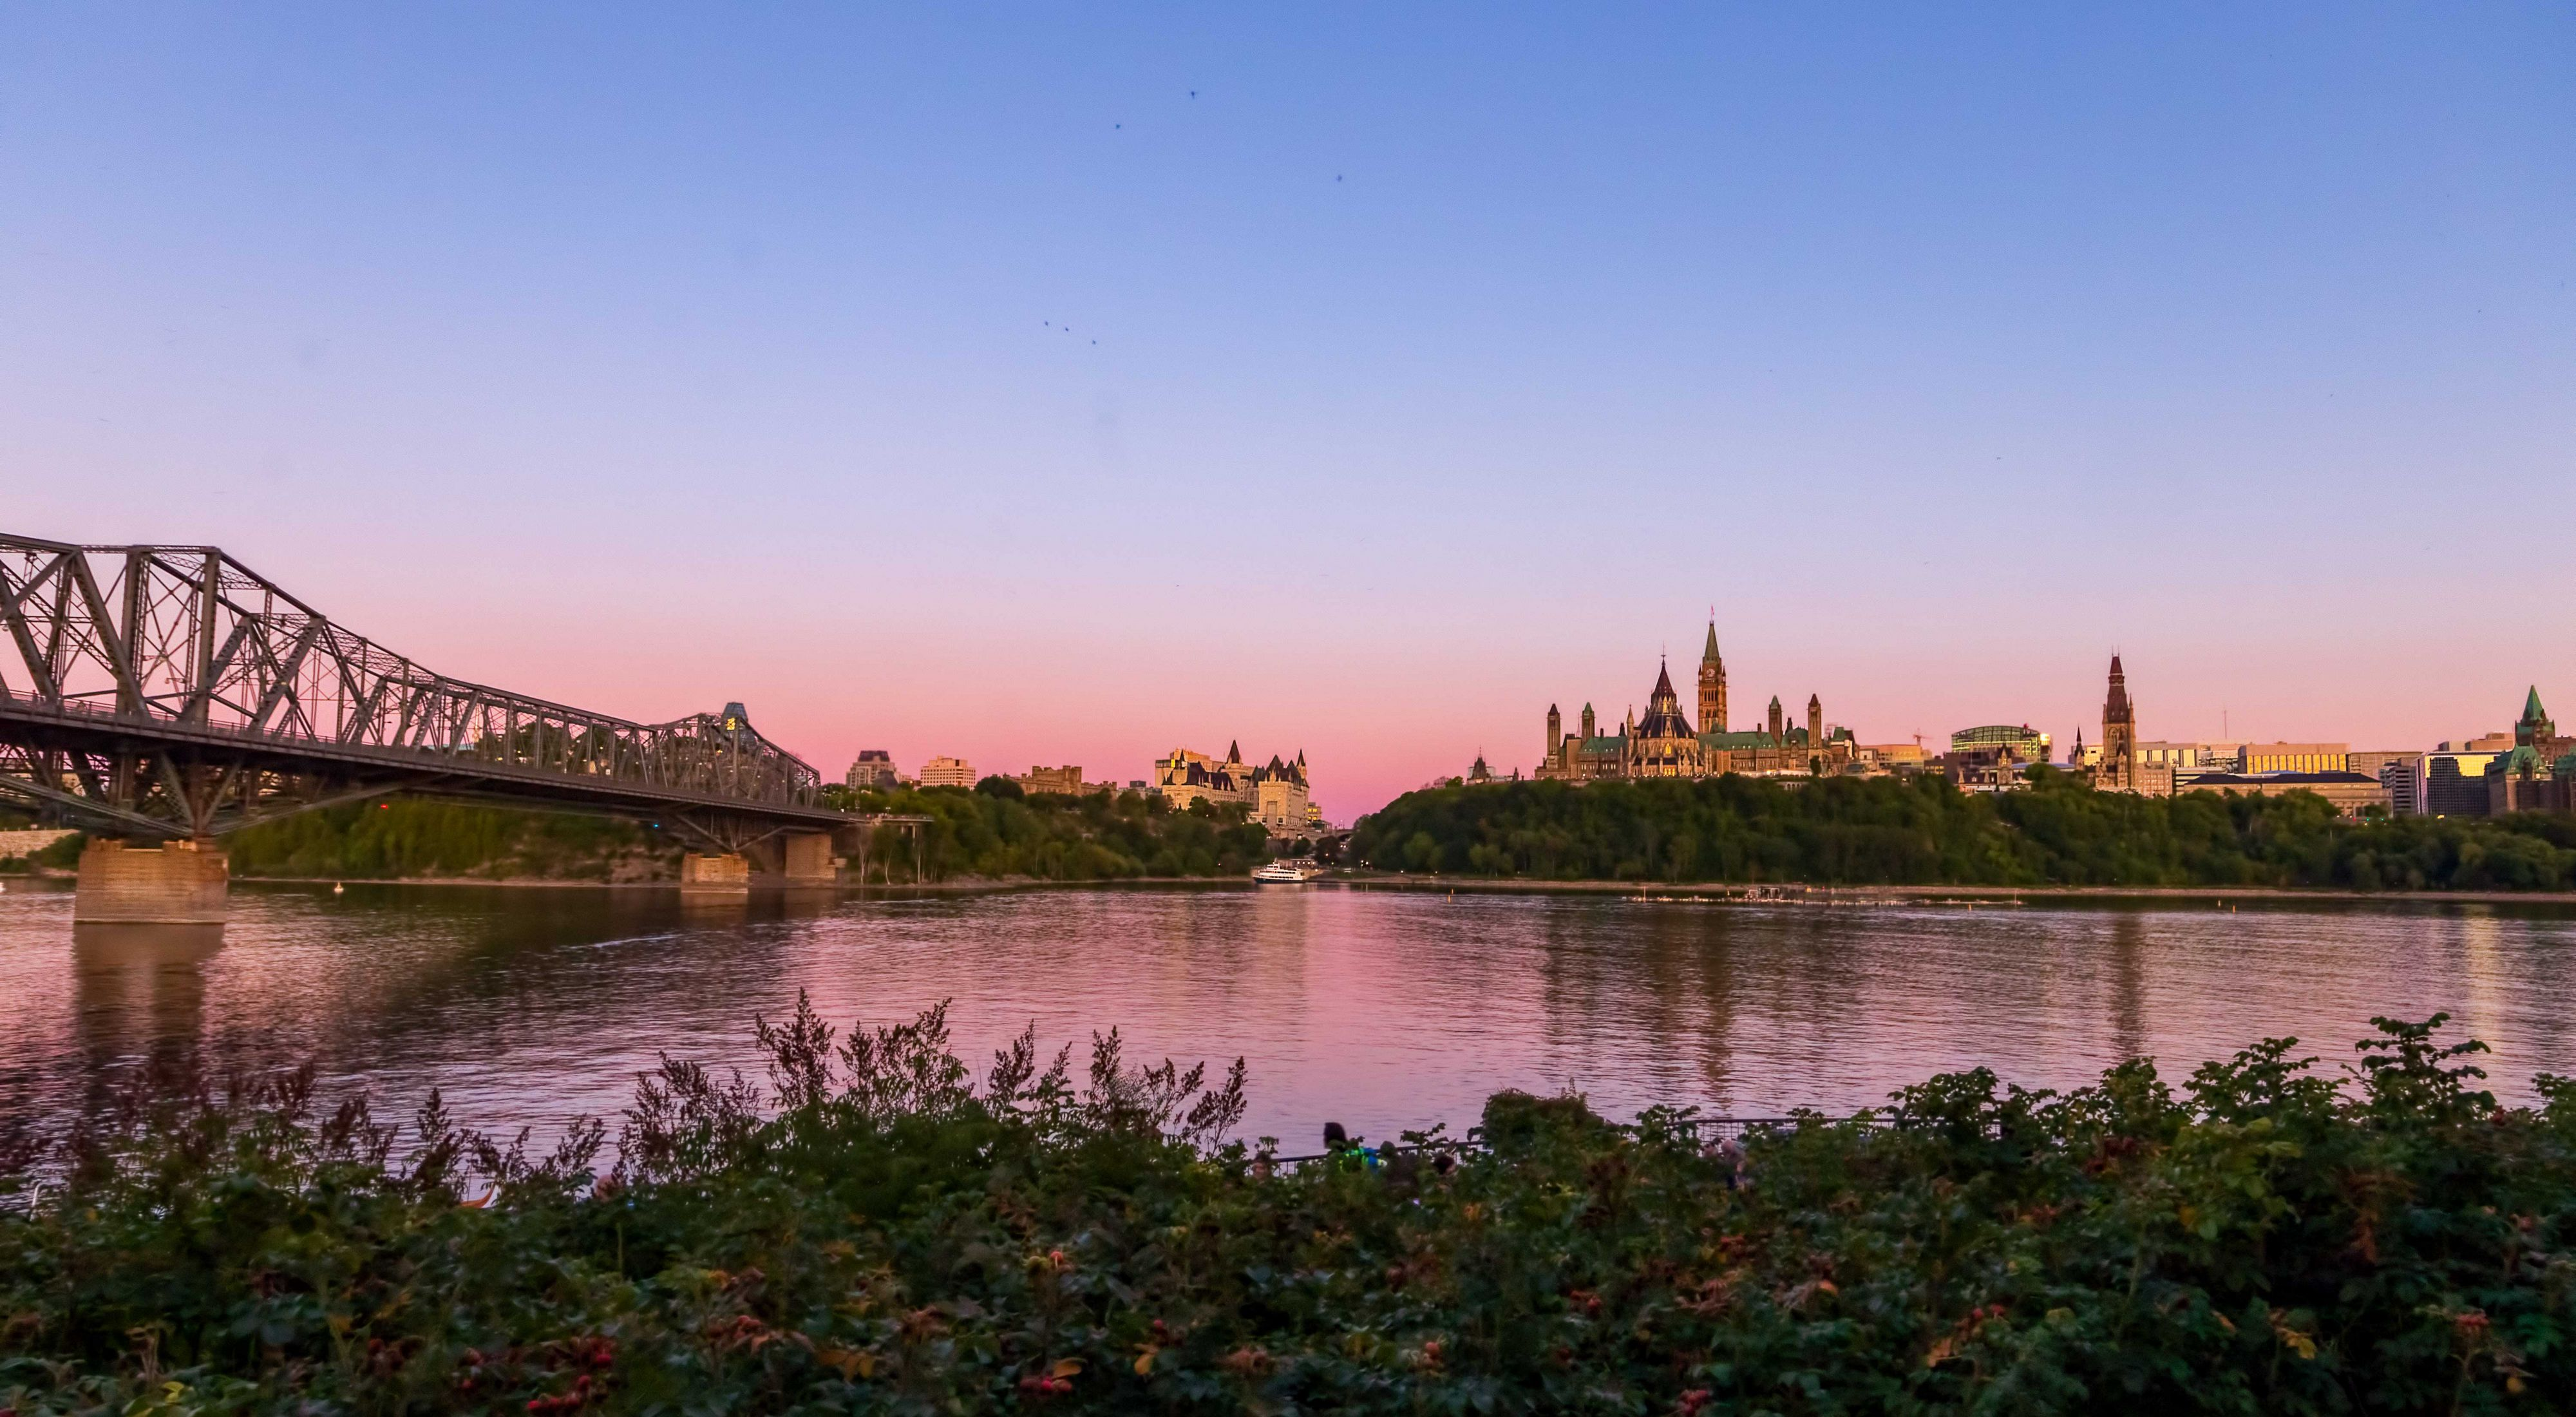 View of downtown Ottawa and the Parliament Buildings of Canada at sunset, taken from Gatineau, Quebec across the Ottawa River